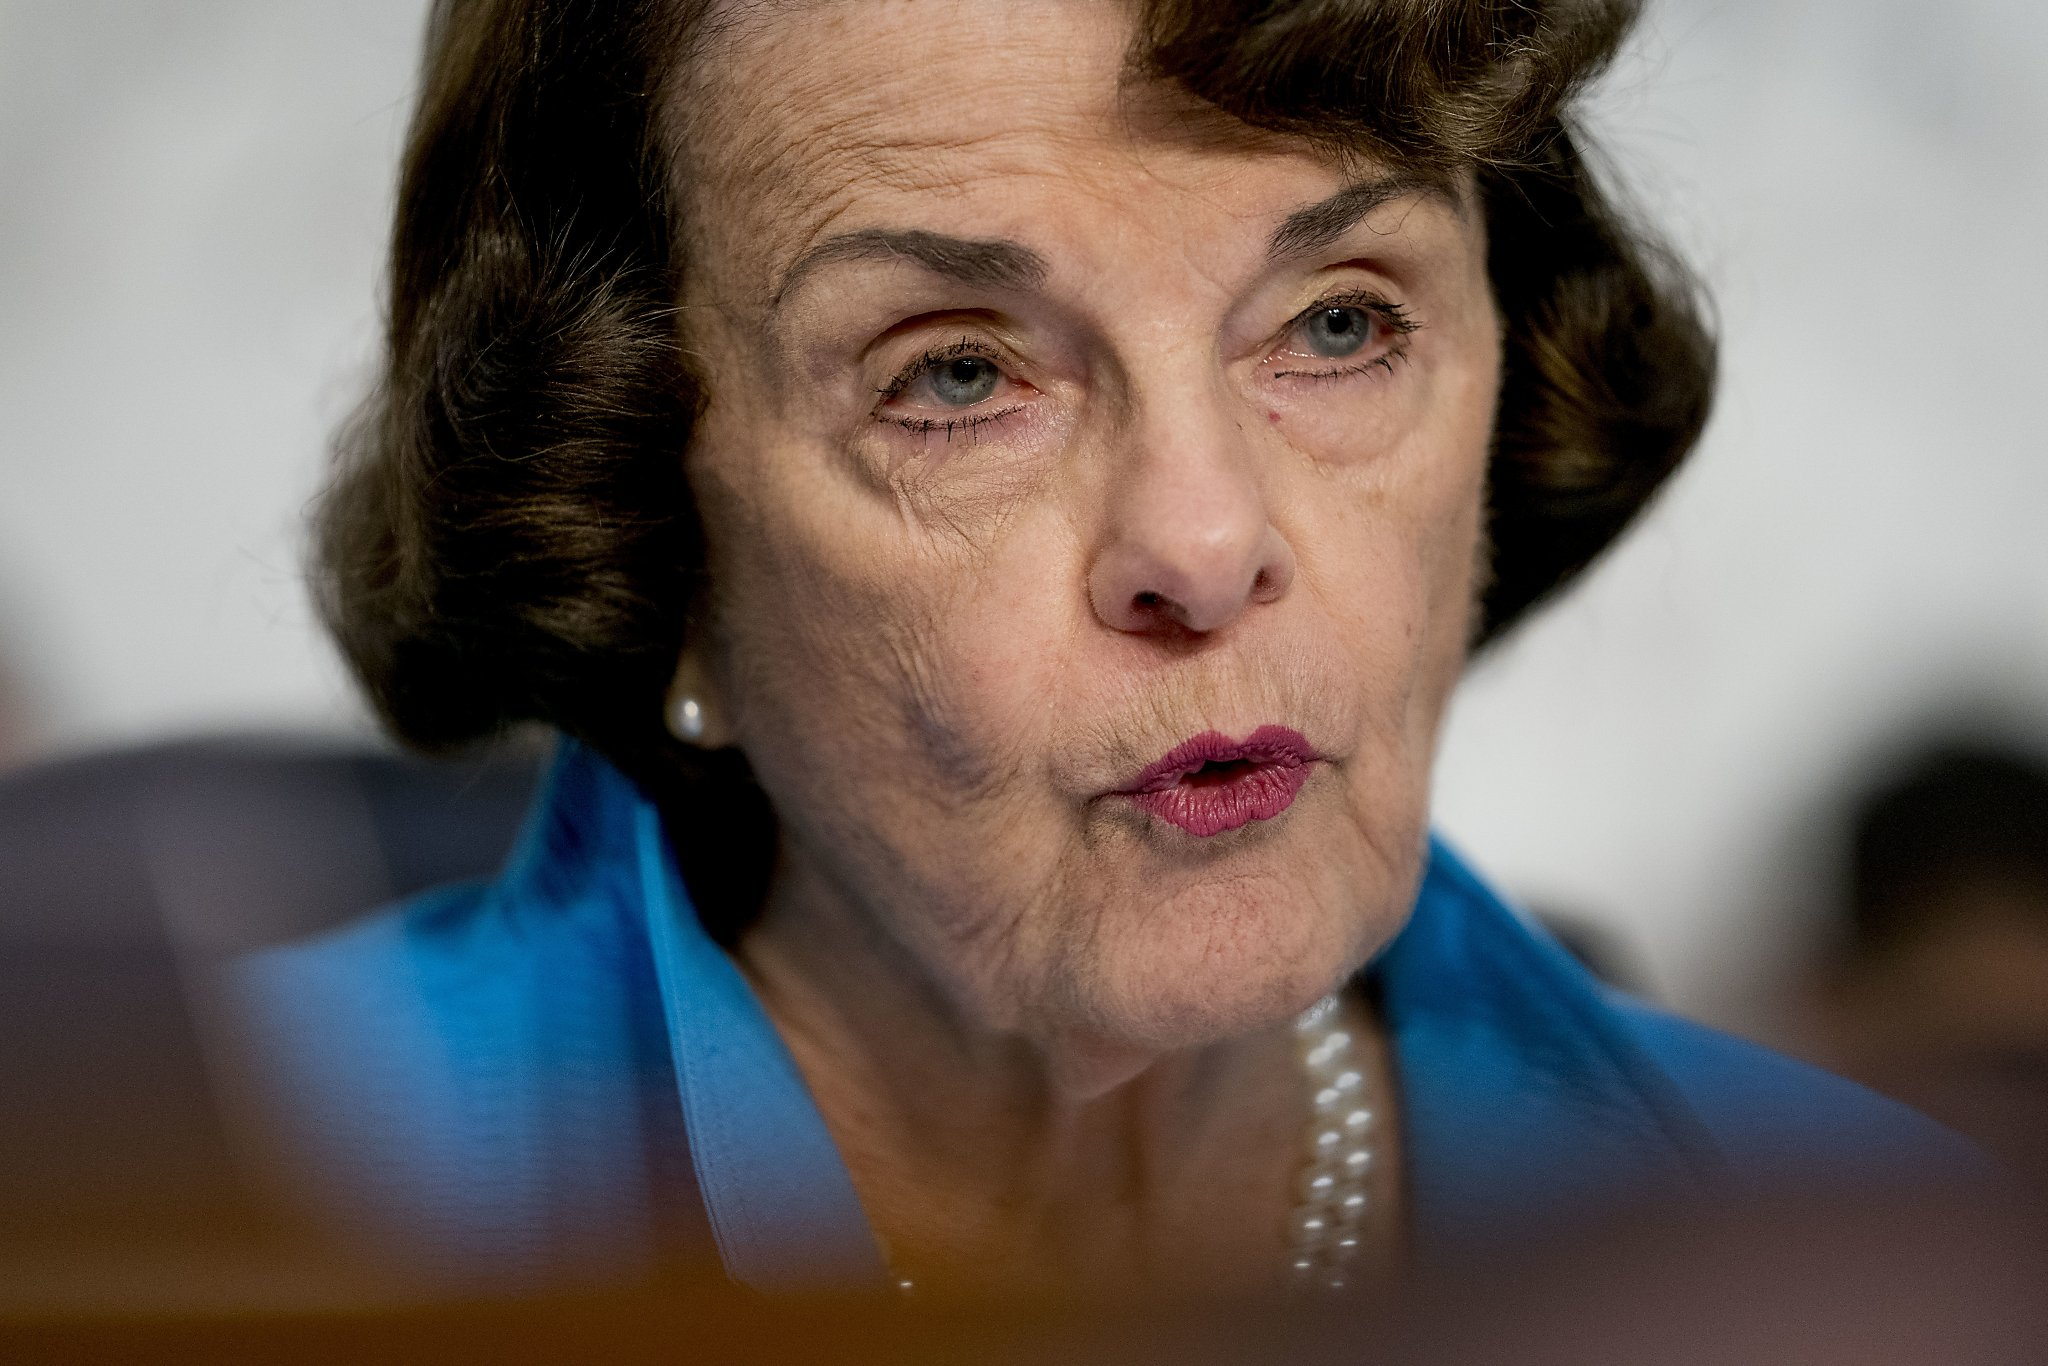 kavanaugh dodges feinstein attempts to pin him down on abortion trump probe sfchronicle com kavanaugh dodges feinstein attempts to